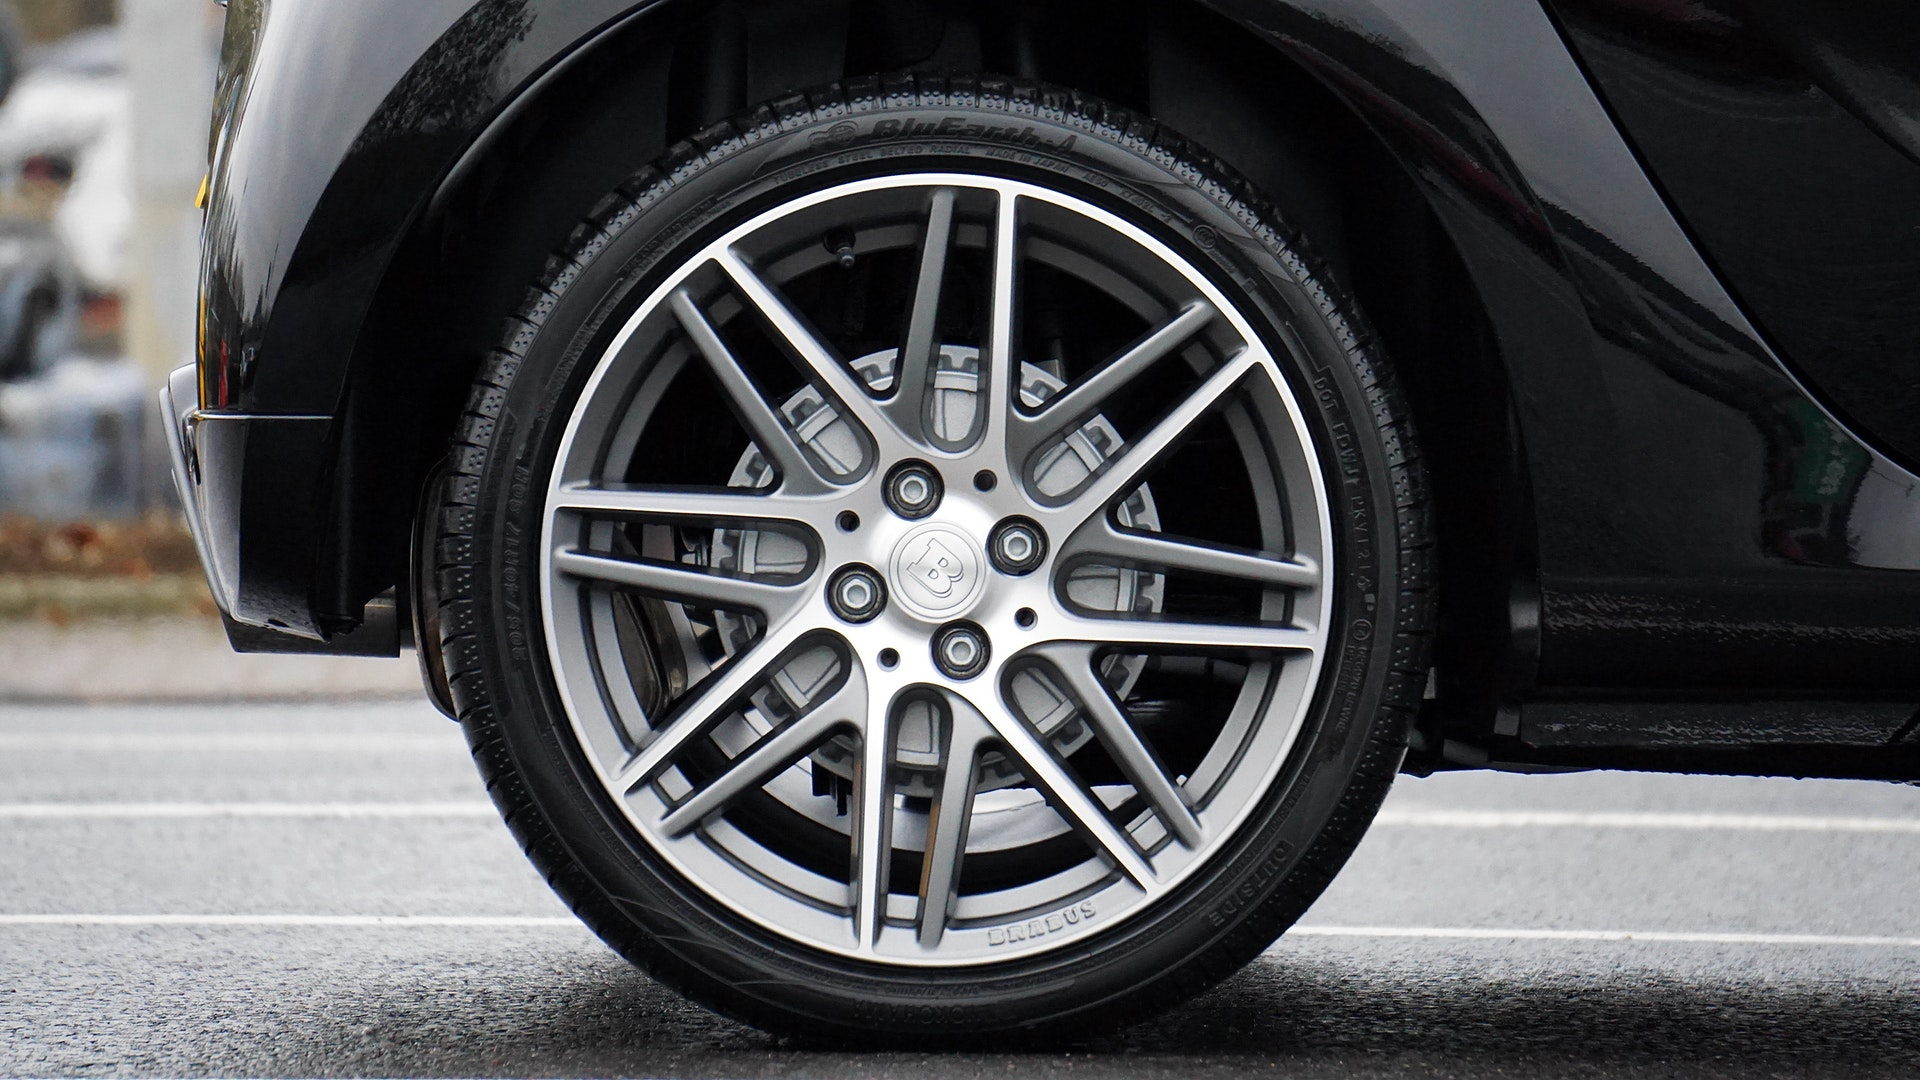 Buy Cheap Tires Online